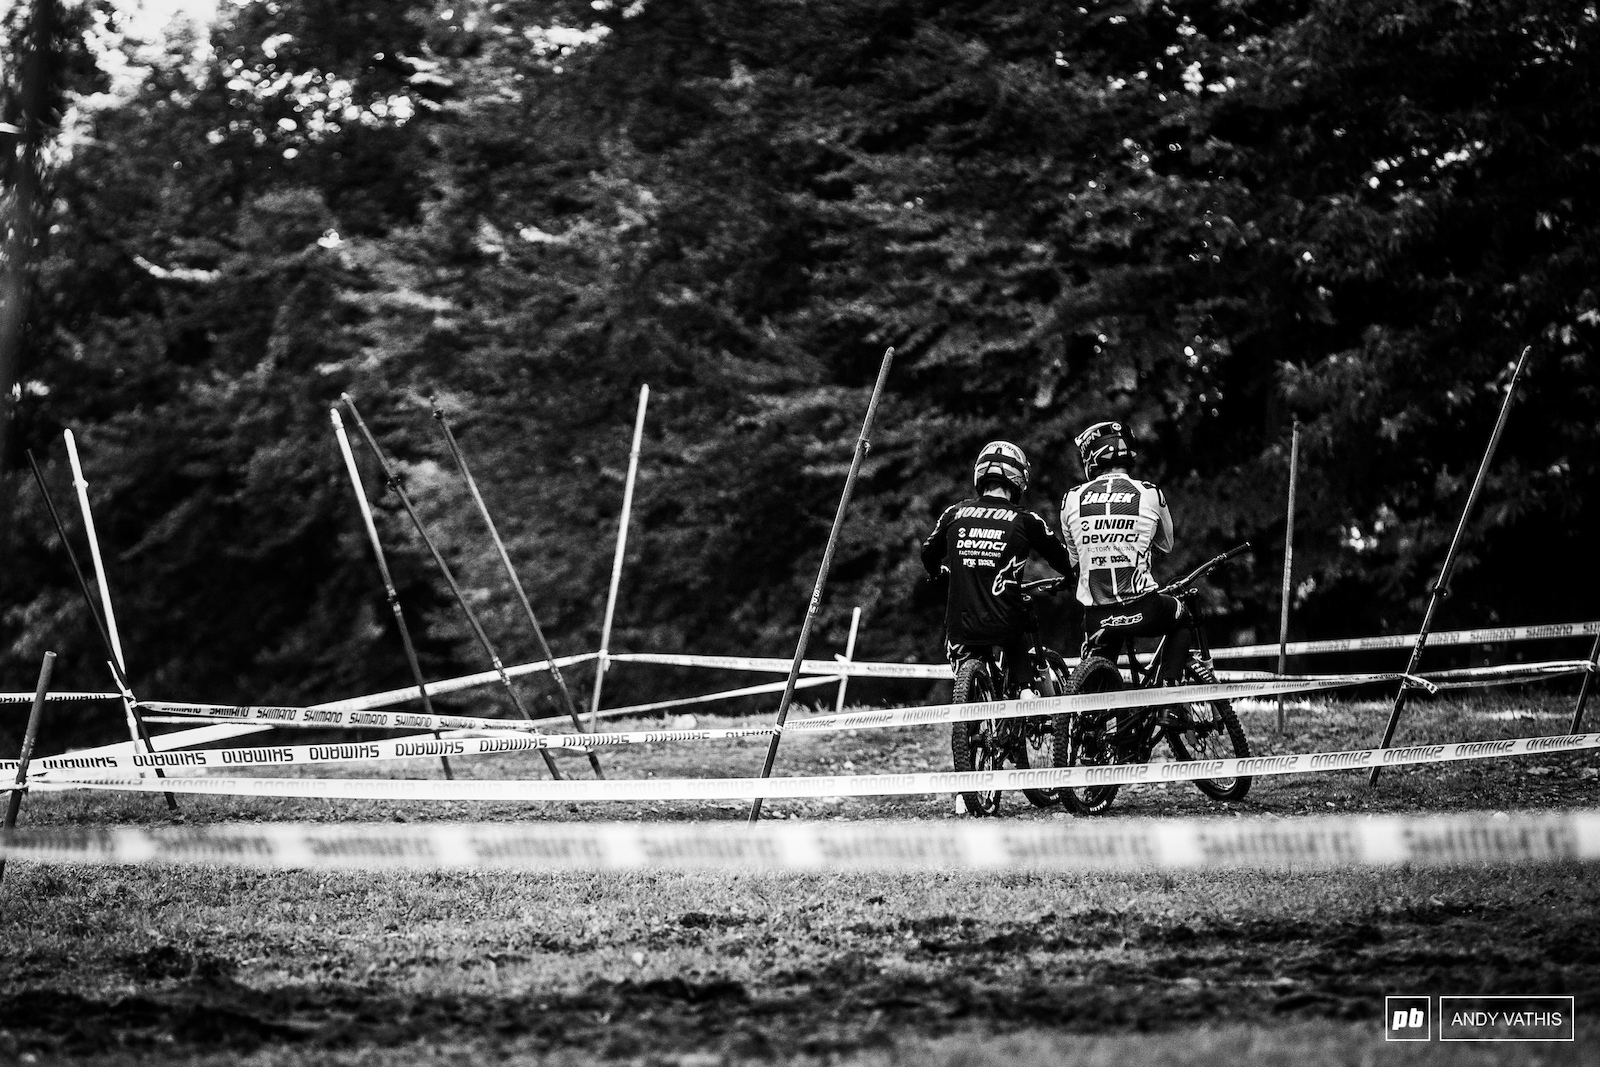 The Devinci boys discussing line variations before dropping into the bottom of the course.